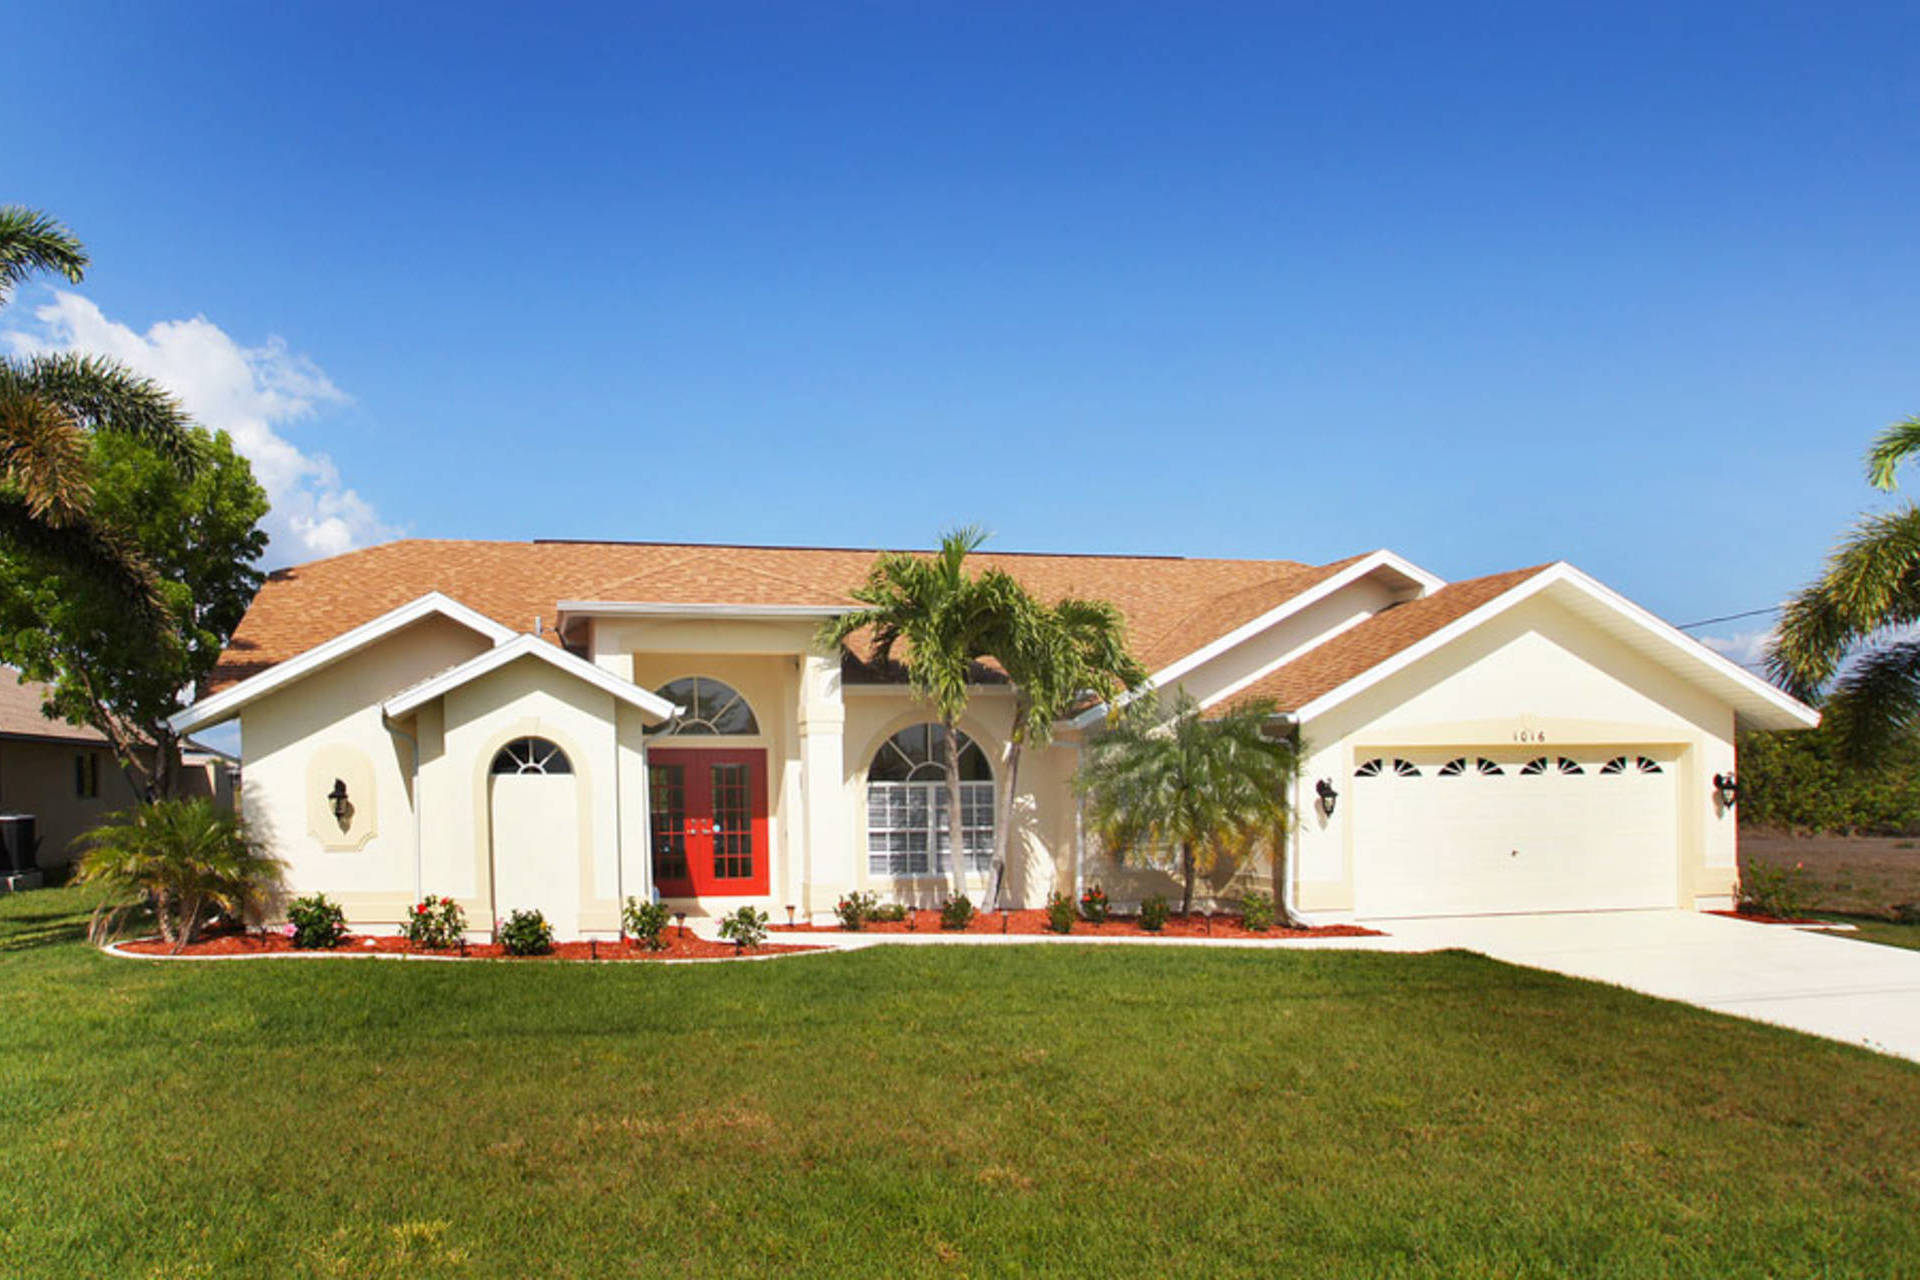 swfl real estate services, llc. ferienhaus mieten in cape coral, Badezimmer ideen